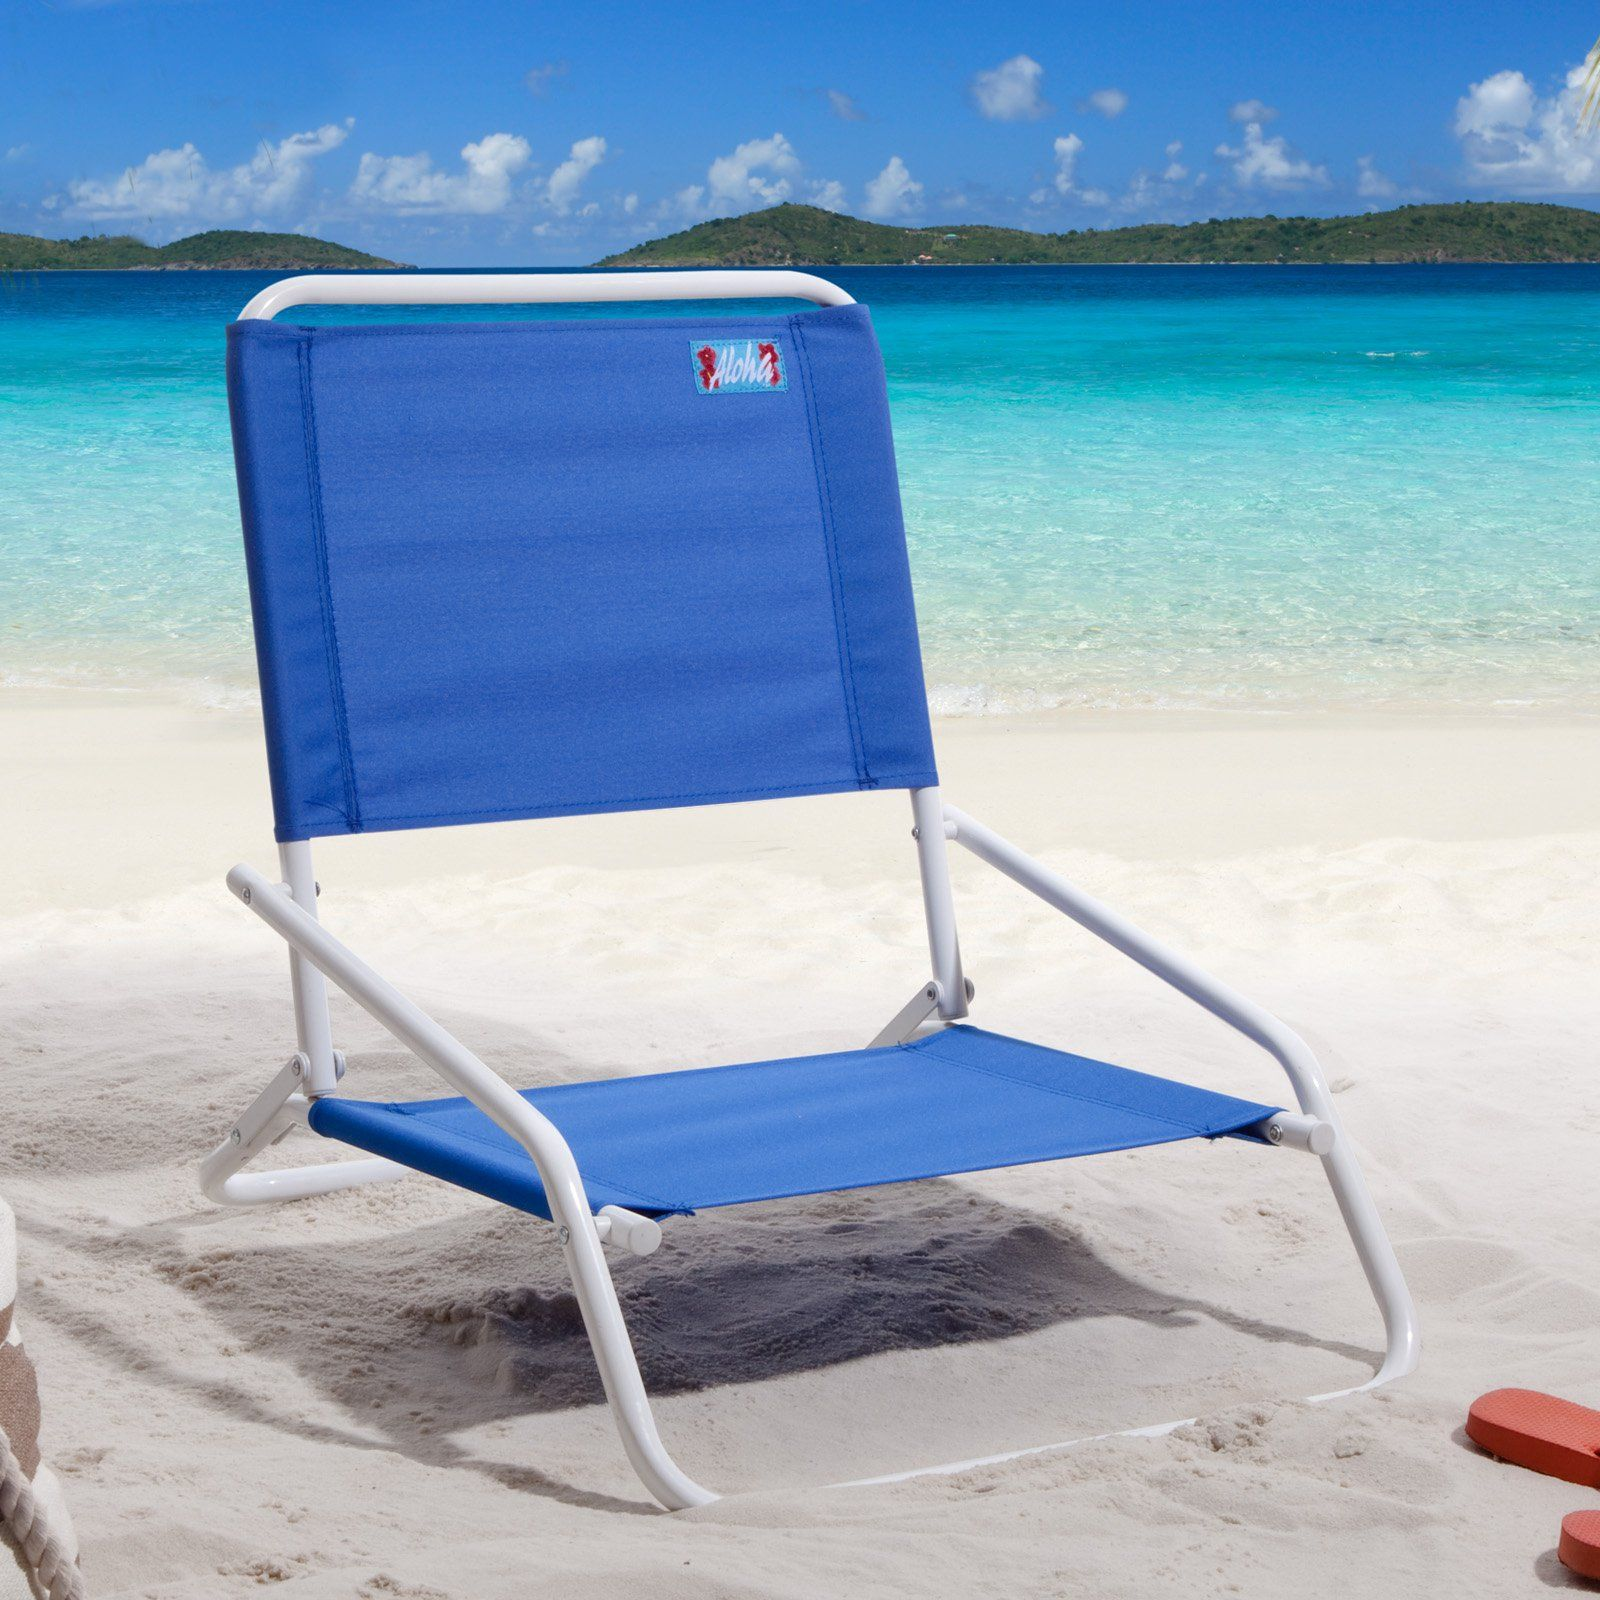 portable beach chairs beach chair low price - Beach Lounge Chairs